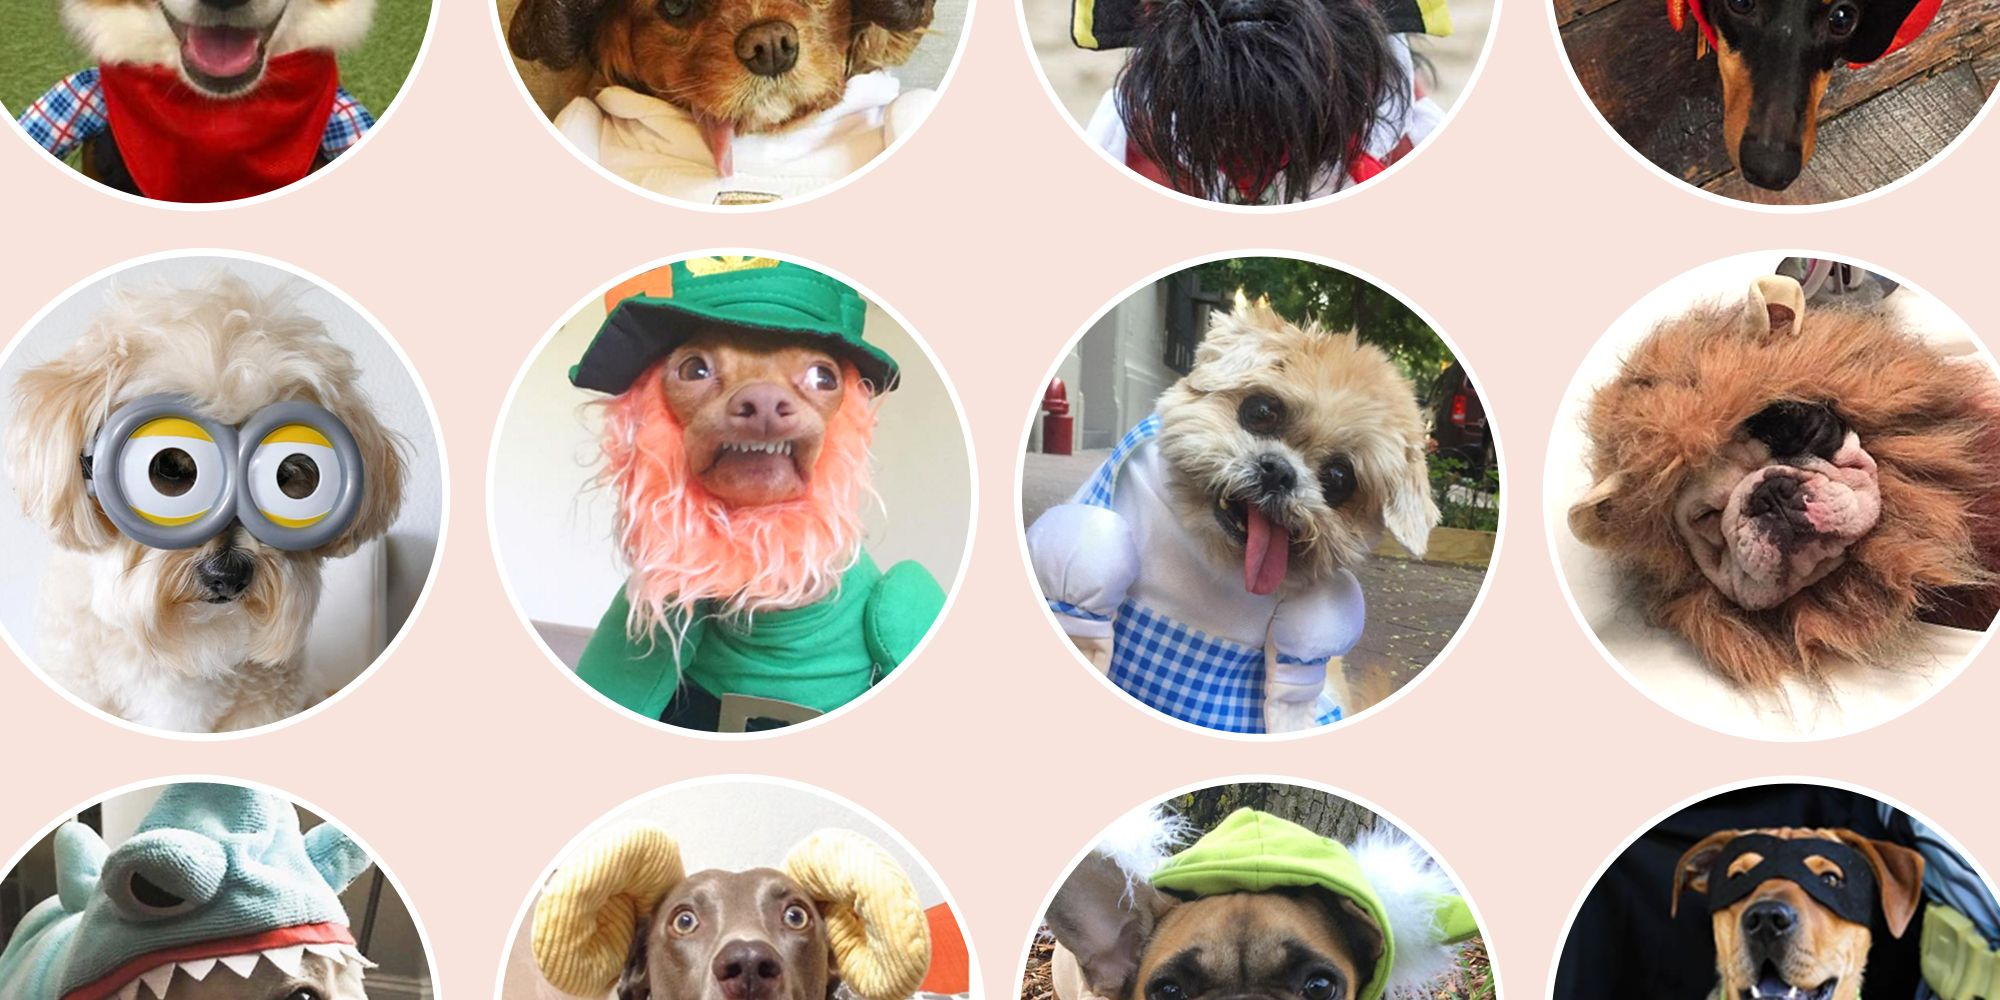 35 best dog costumes for halloween 2018 - cute halloween costumes